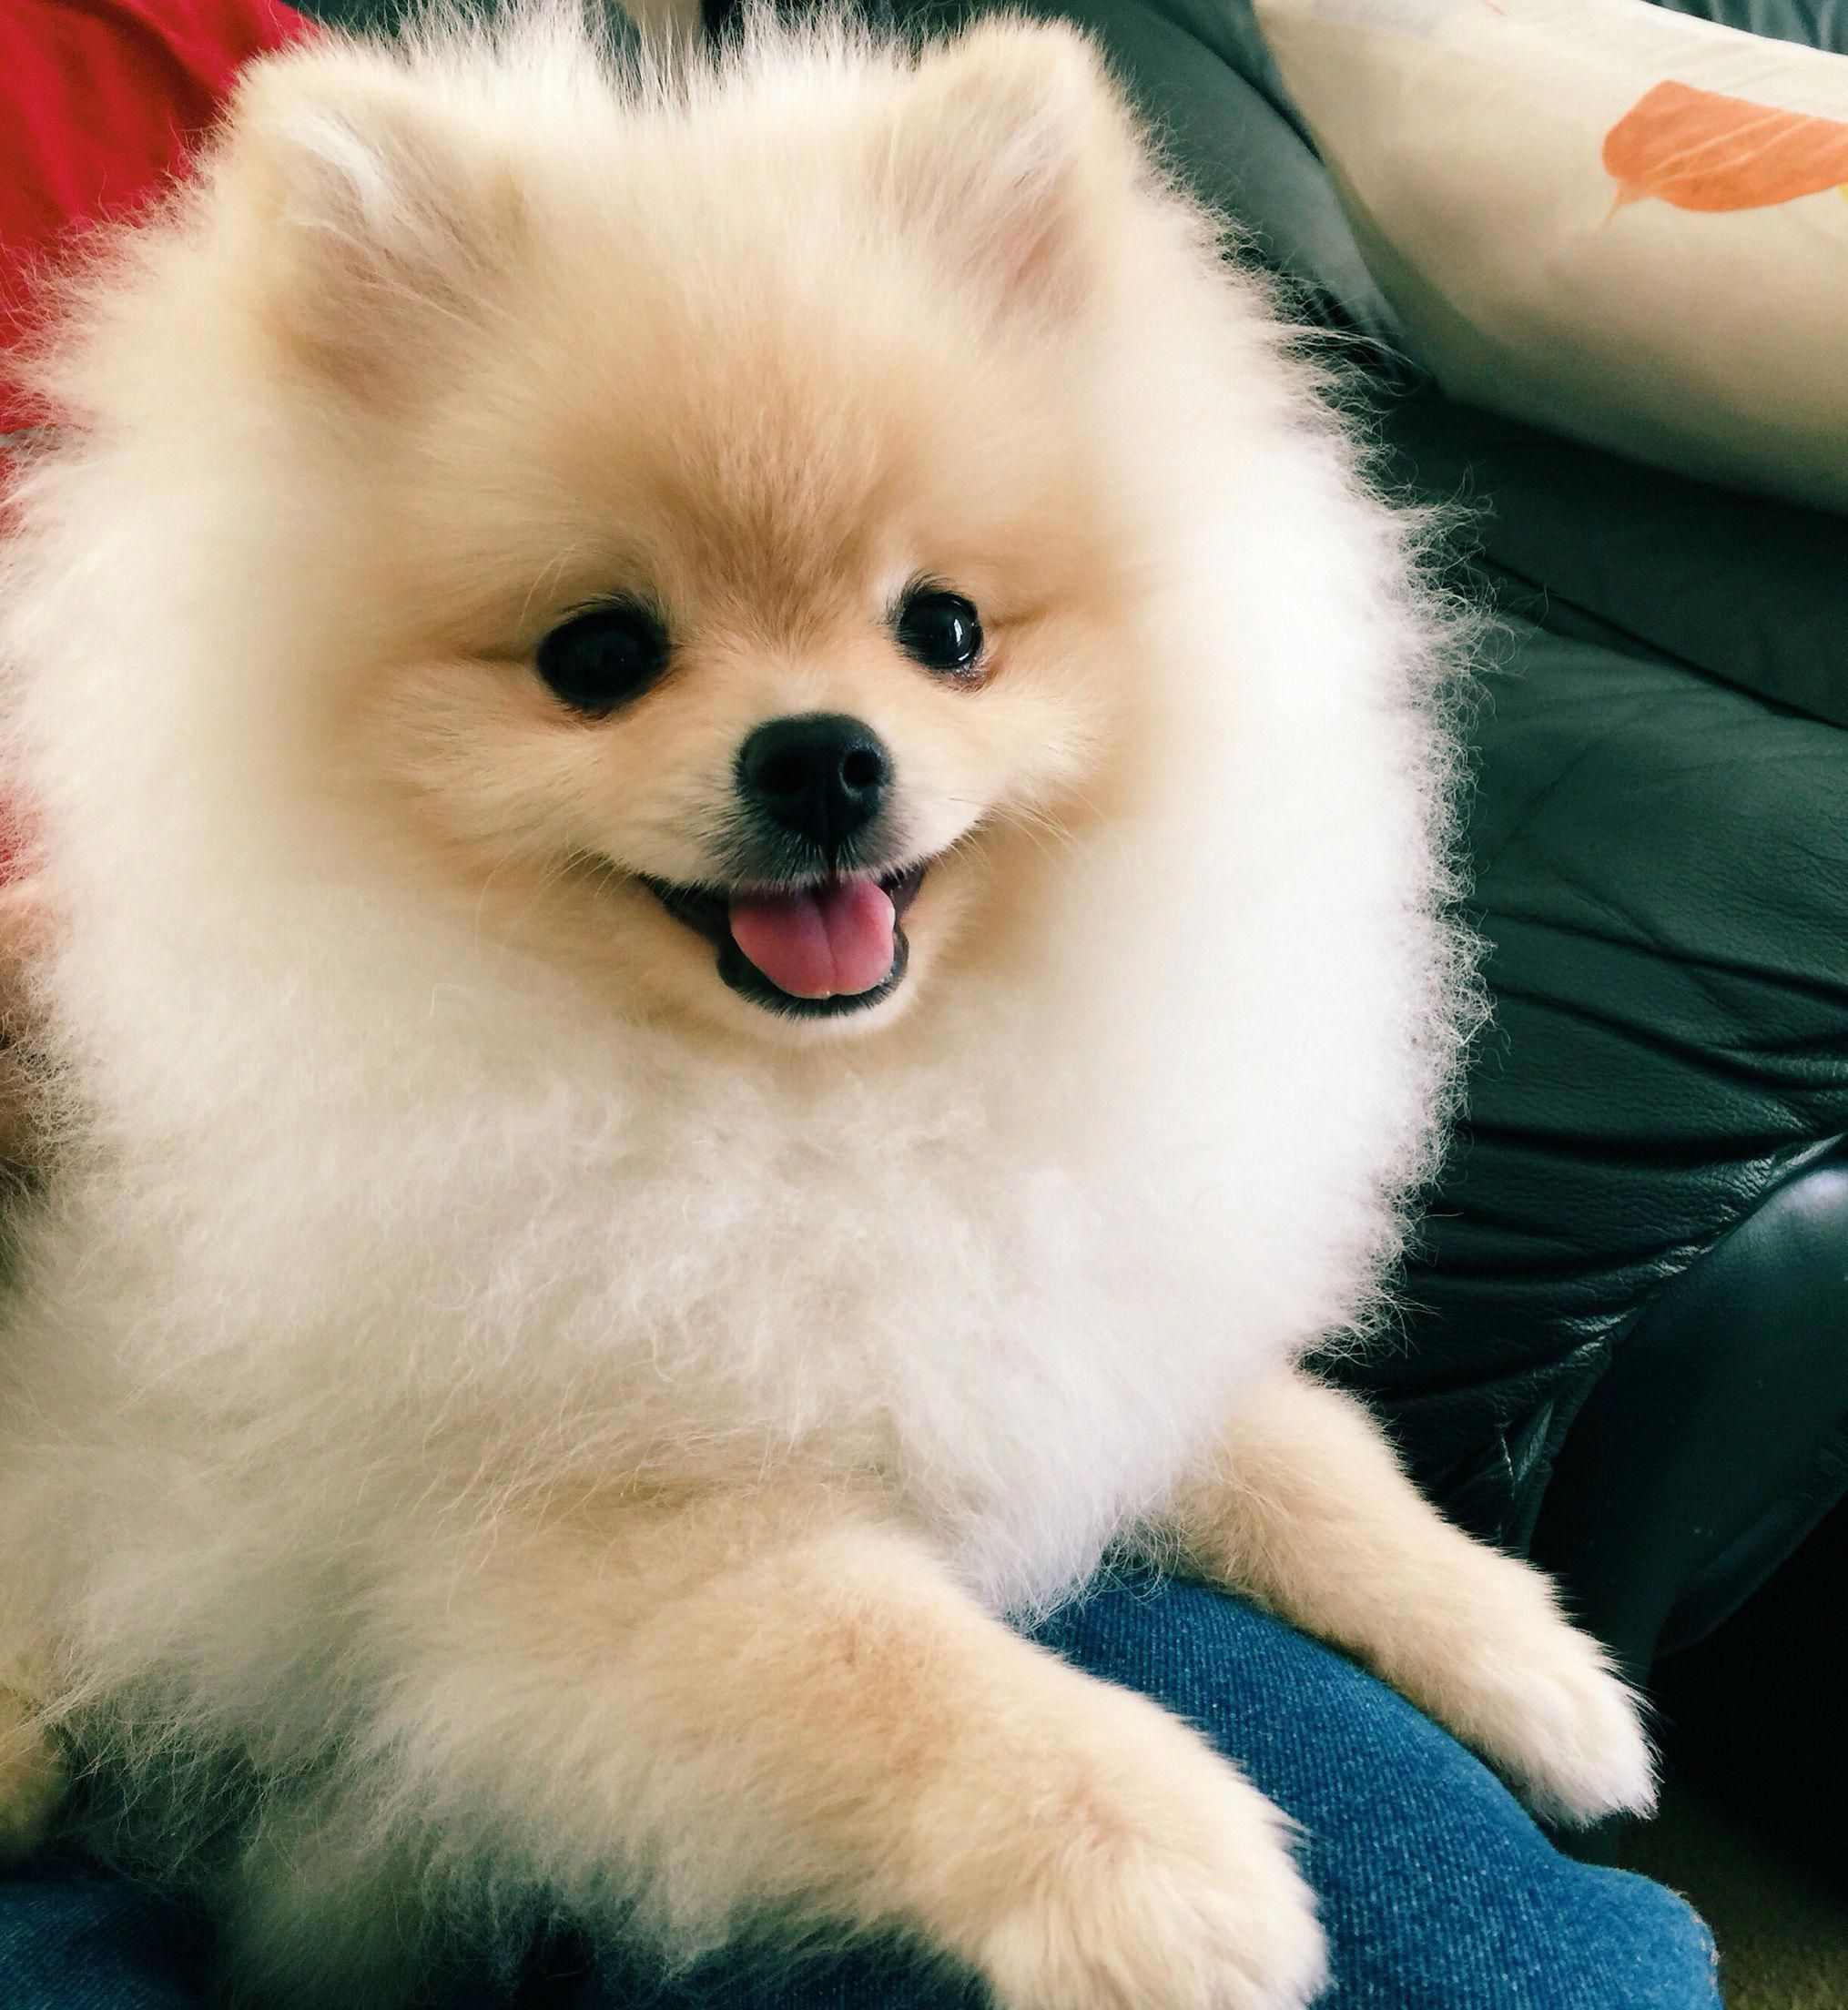 Find Out More On Lively Pomeranian Puppies Personality Pomeranianpuppies Pomeranianpoodle Pomeranianwhite Teacuppomera Zwergspitz Hund Susse Tiere Babyhunde